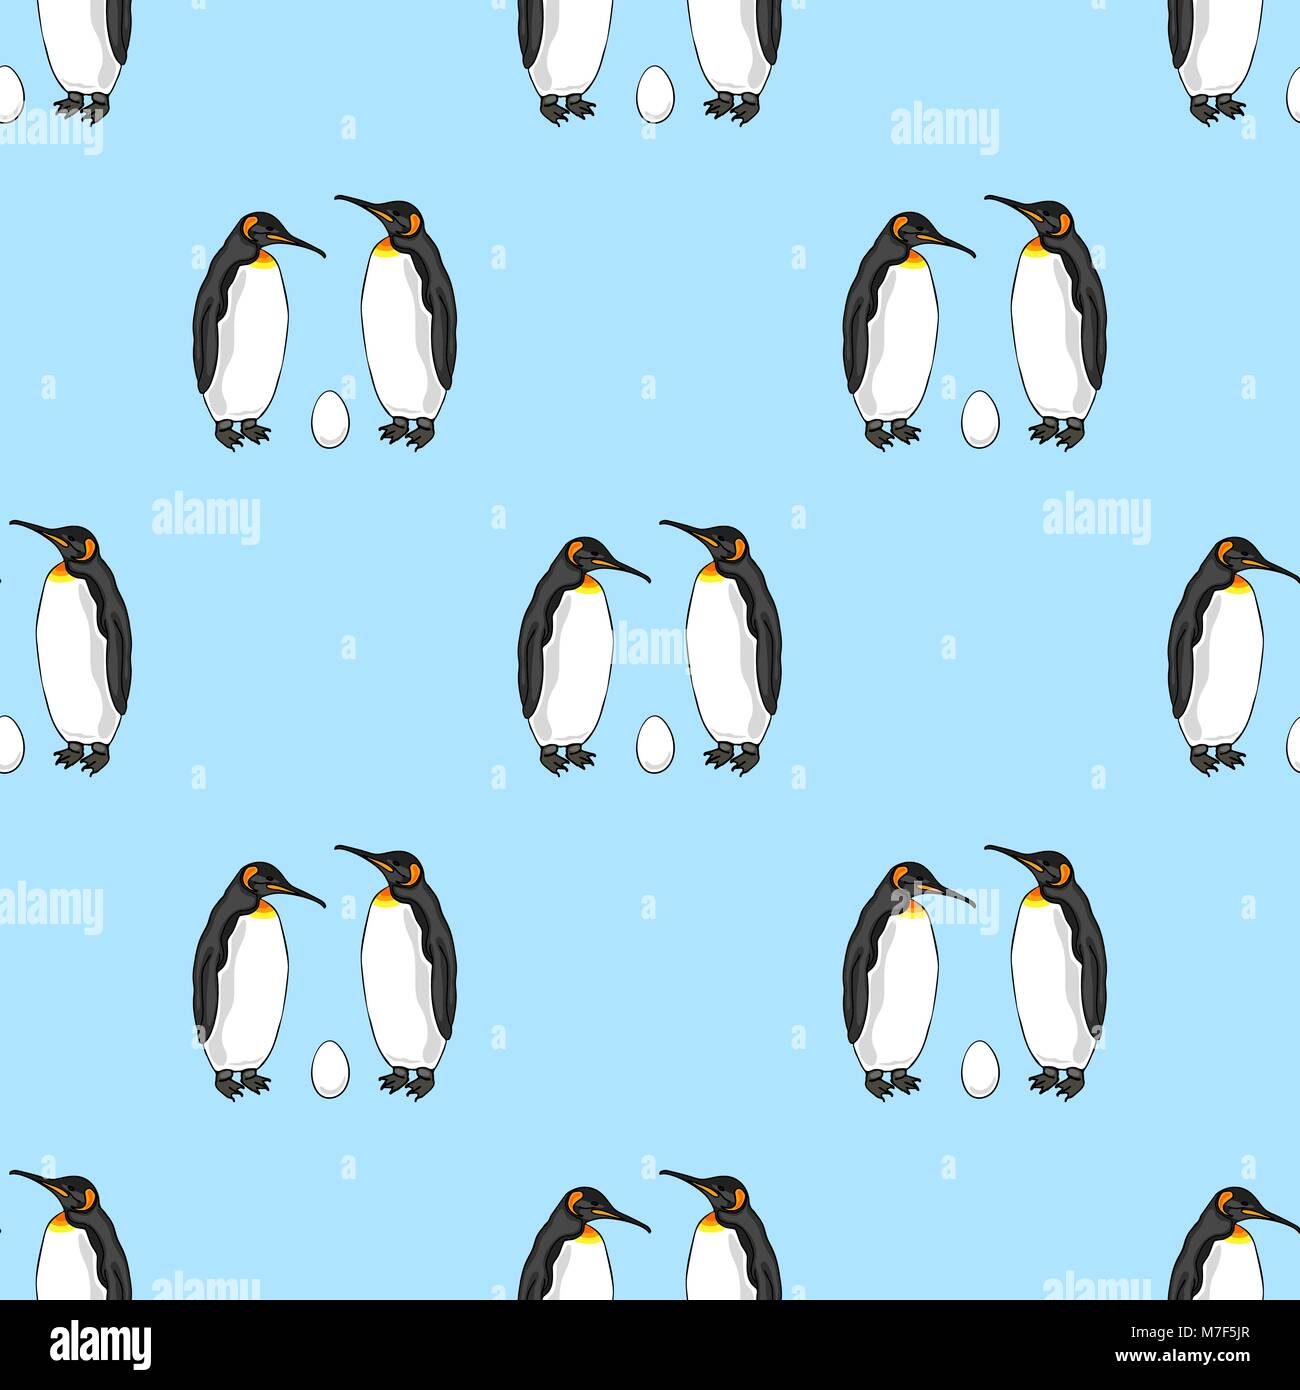 Vector seamless pattern of bird penguin couple with egg. Emperor penguin family - Stock Image